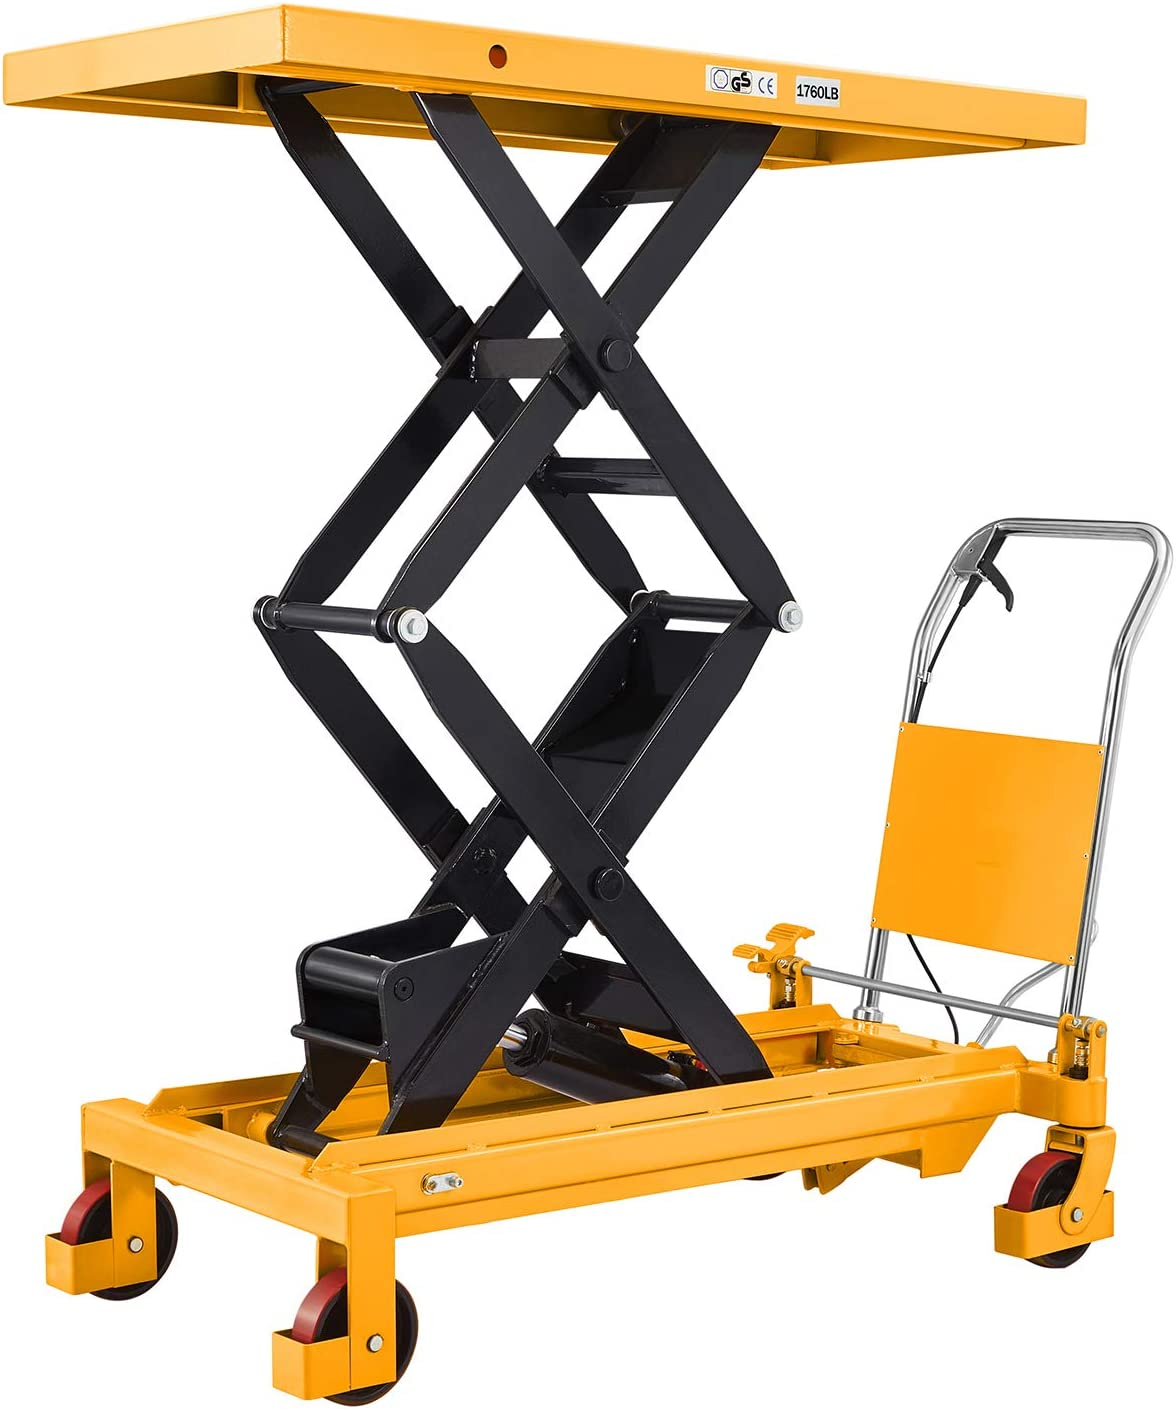 Platform Size 48.0 x 24.0 with Safety Guard 1760lbs 59.1 Lifting Height SOVANS Manual Double Scissor Hydraulic Lift Table Cart